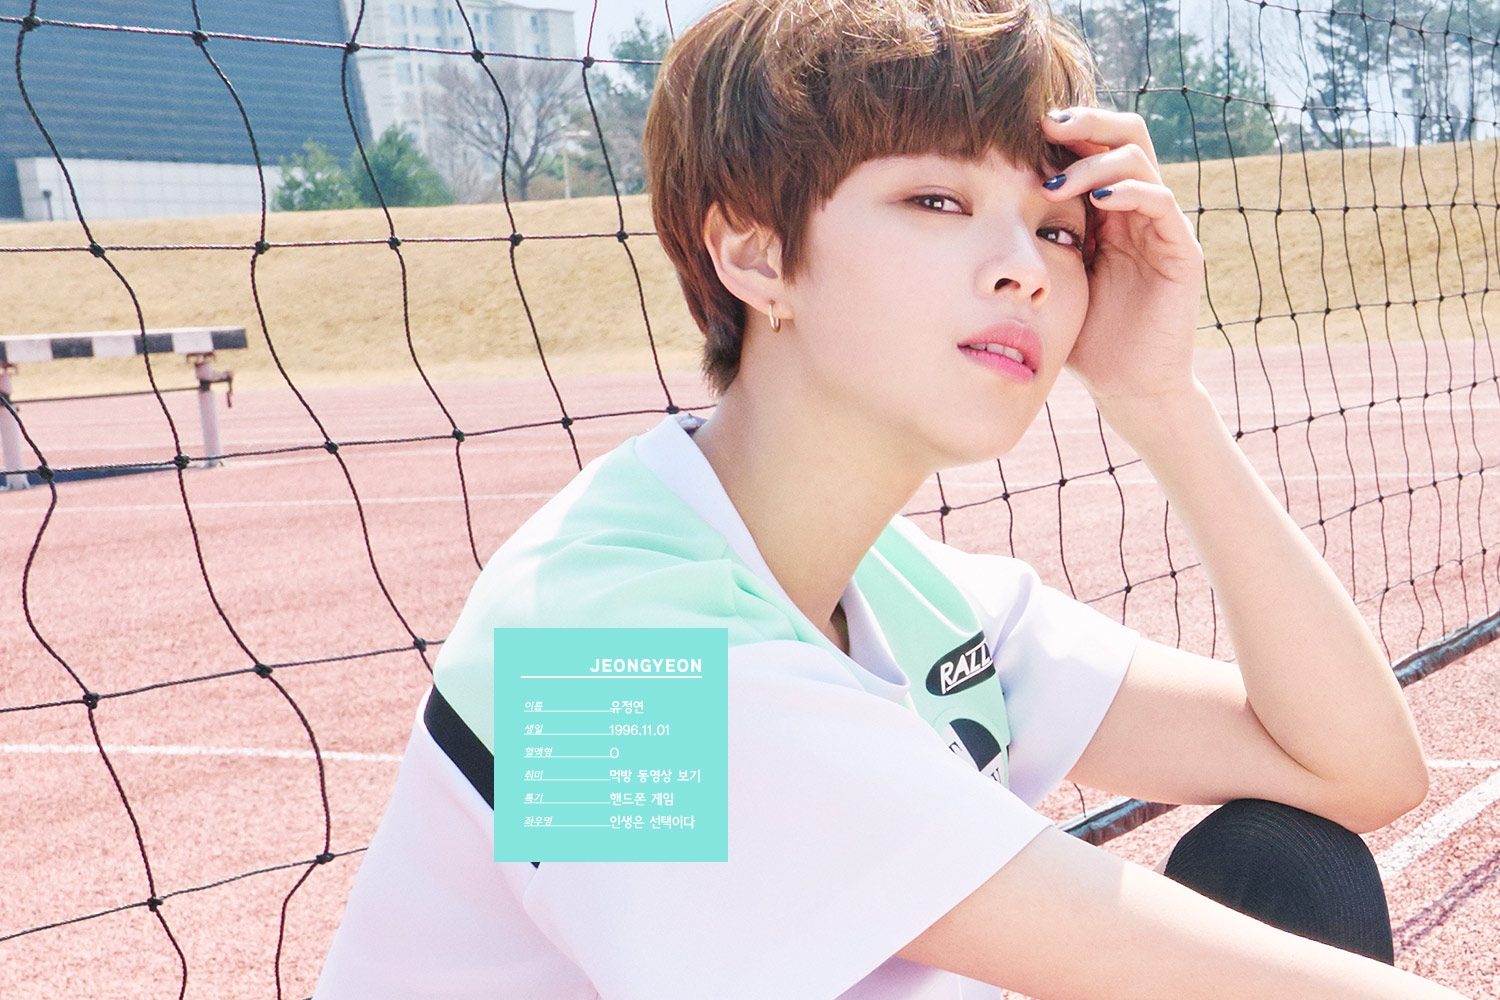 Twice Jungyeon   Twice Wallpaper 1500x1000 249908 1500x1000